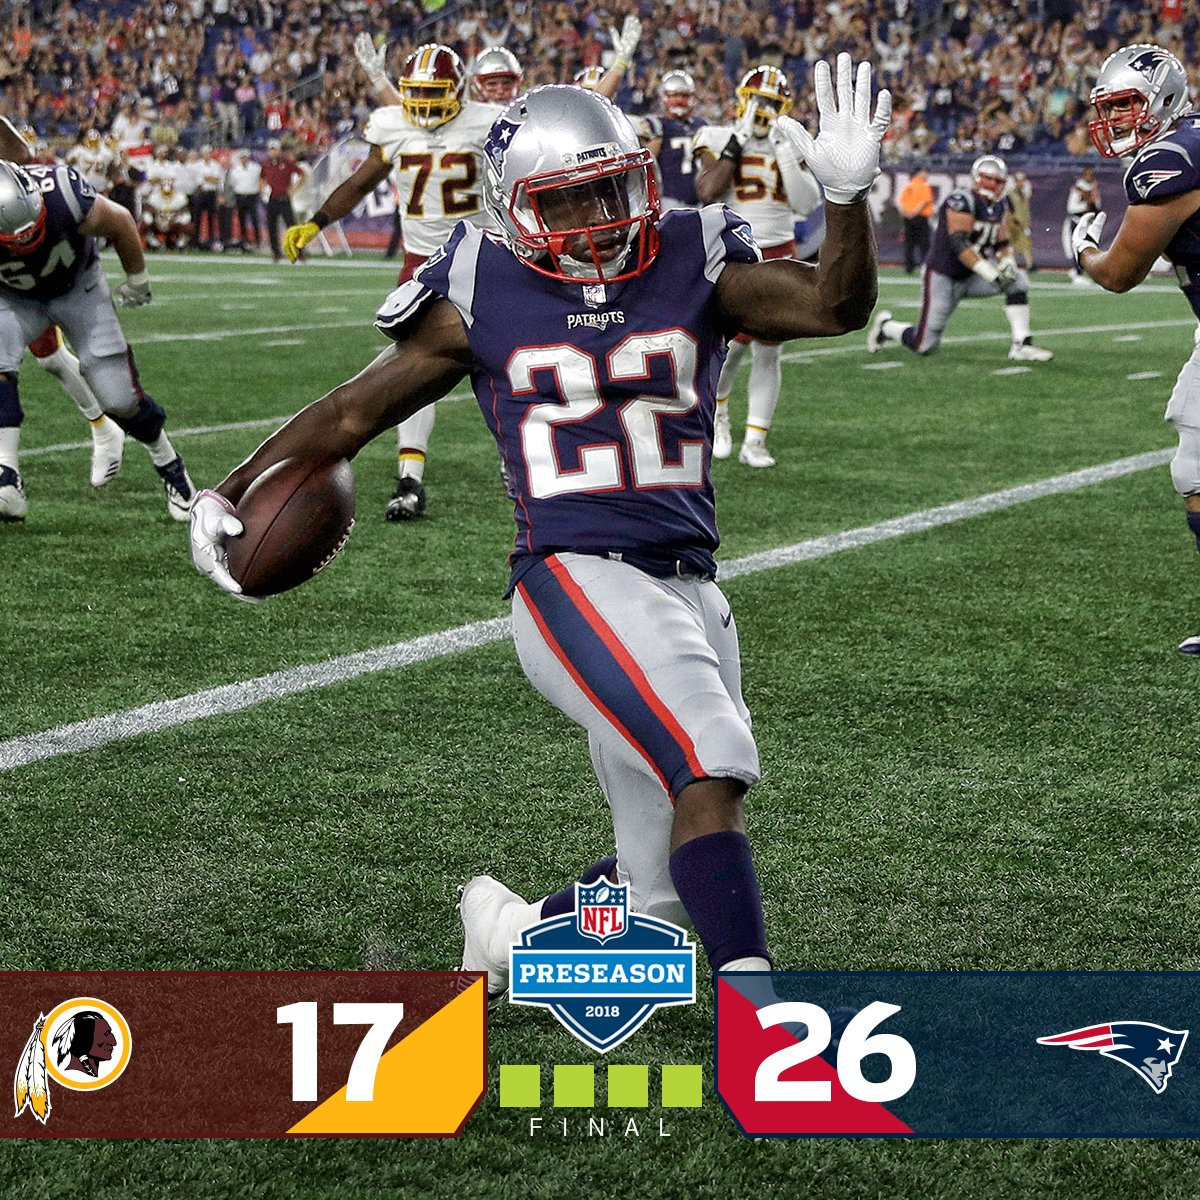 FINAL: @Patriots WIN! #WASvsNE <br>http://pic.twitter.com/6iykGLhtMF